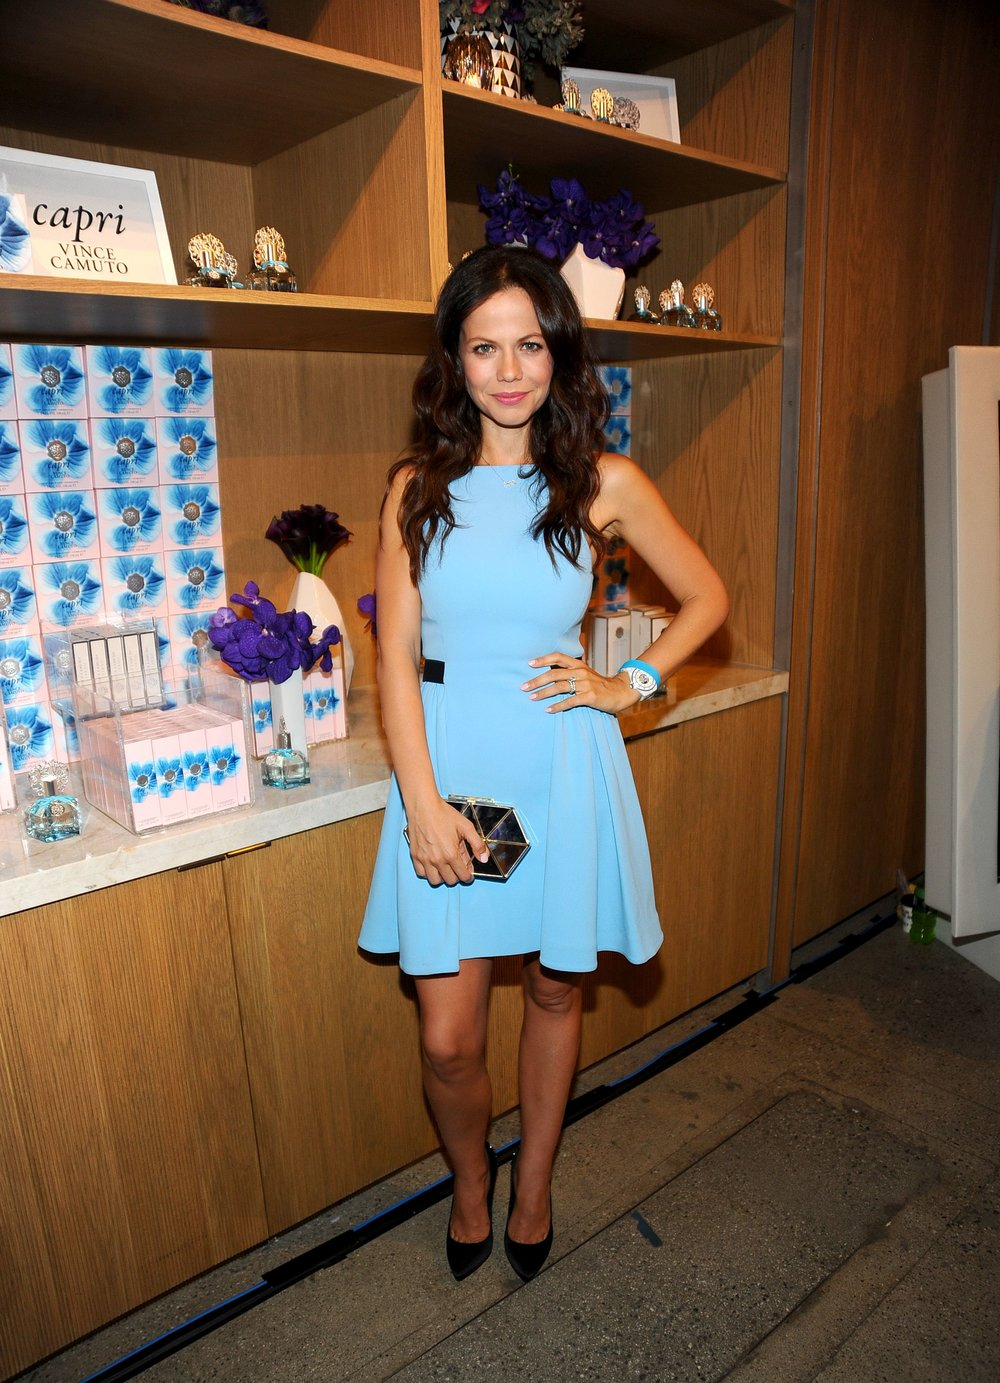 Tammin Sursok carries the Vince Camuto Aleni Clutch and wears Louise et Cie pumps.